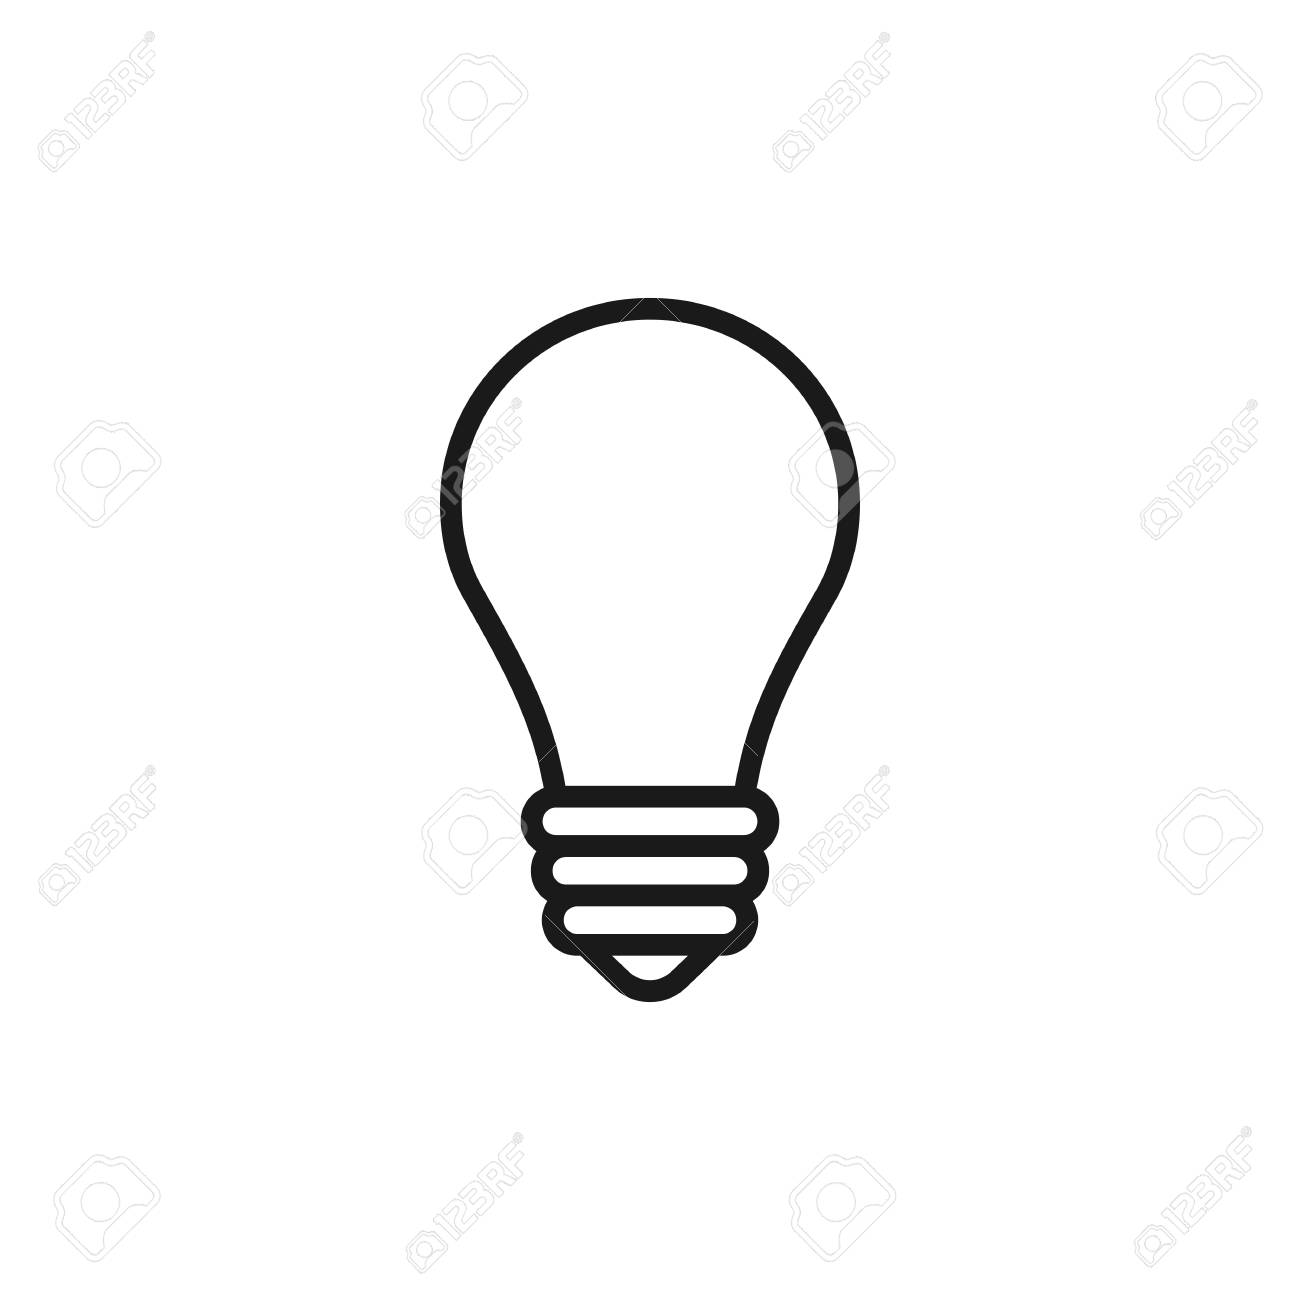 Black Isolated Outline Icon Of Light Bulb On White Background Line